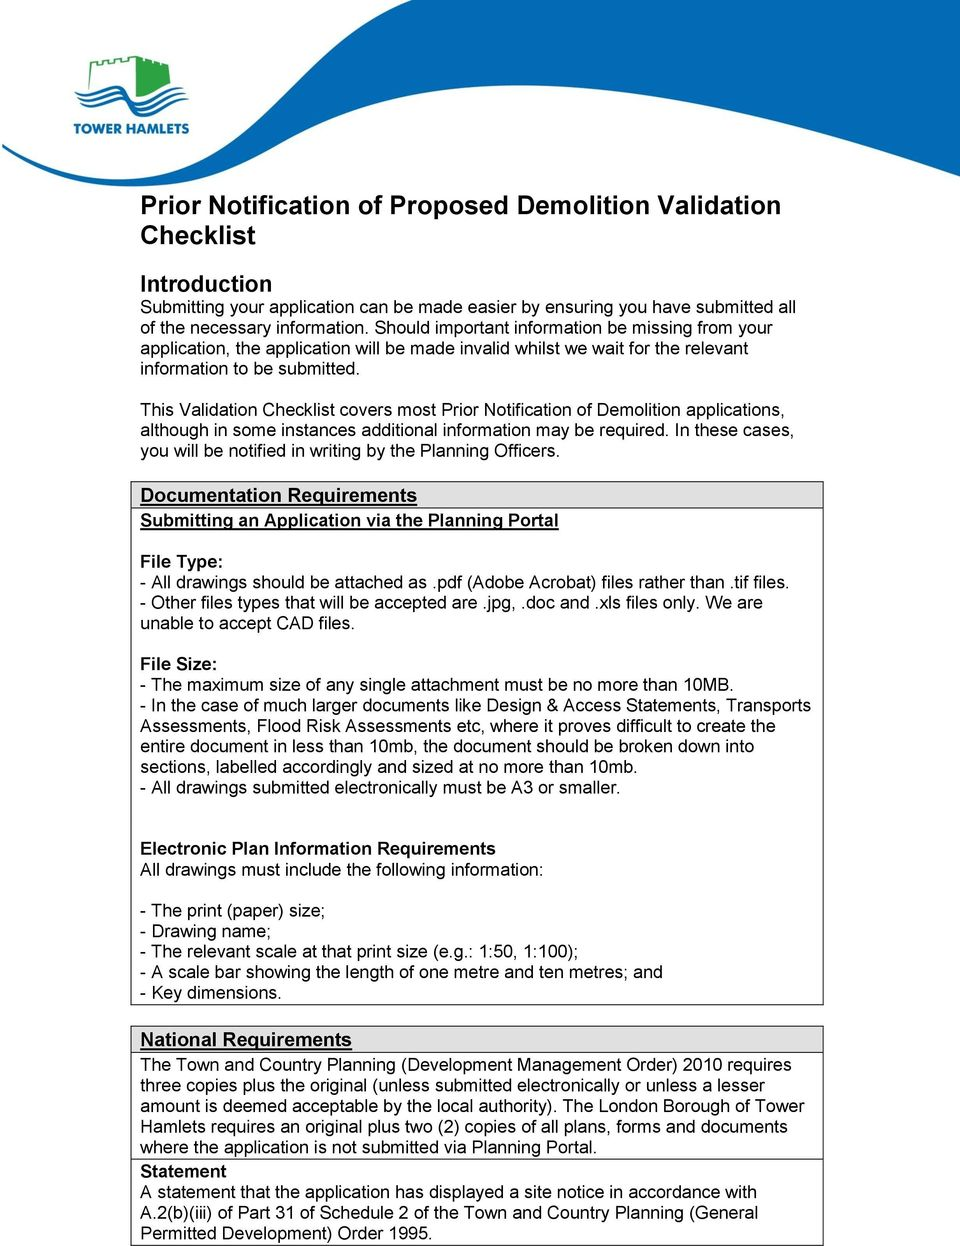 This Validation Checklist covers most Prior Notification of Demolition applications, although in some instances additional information may be required.